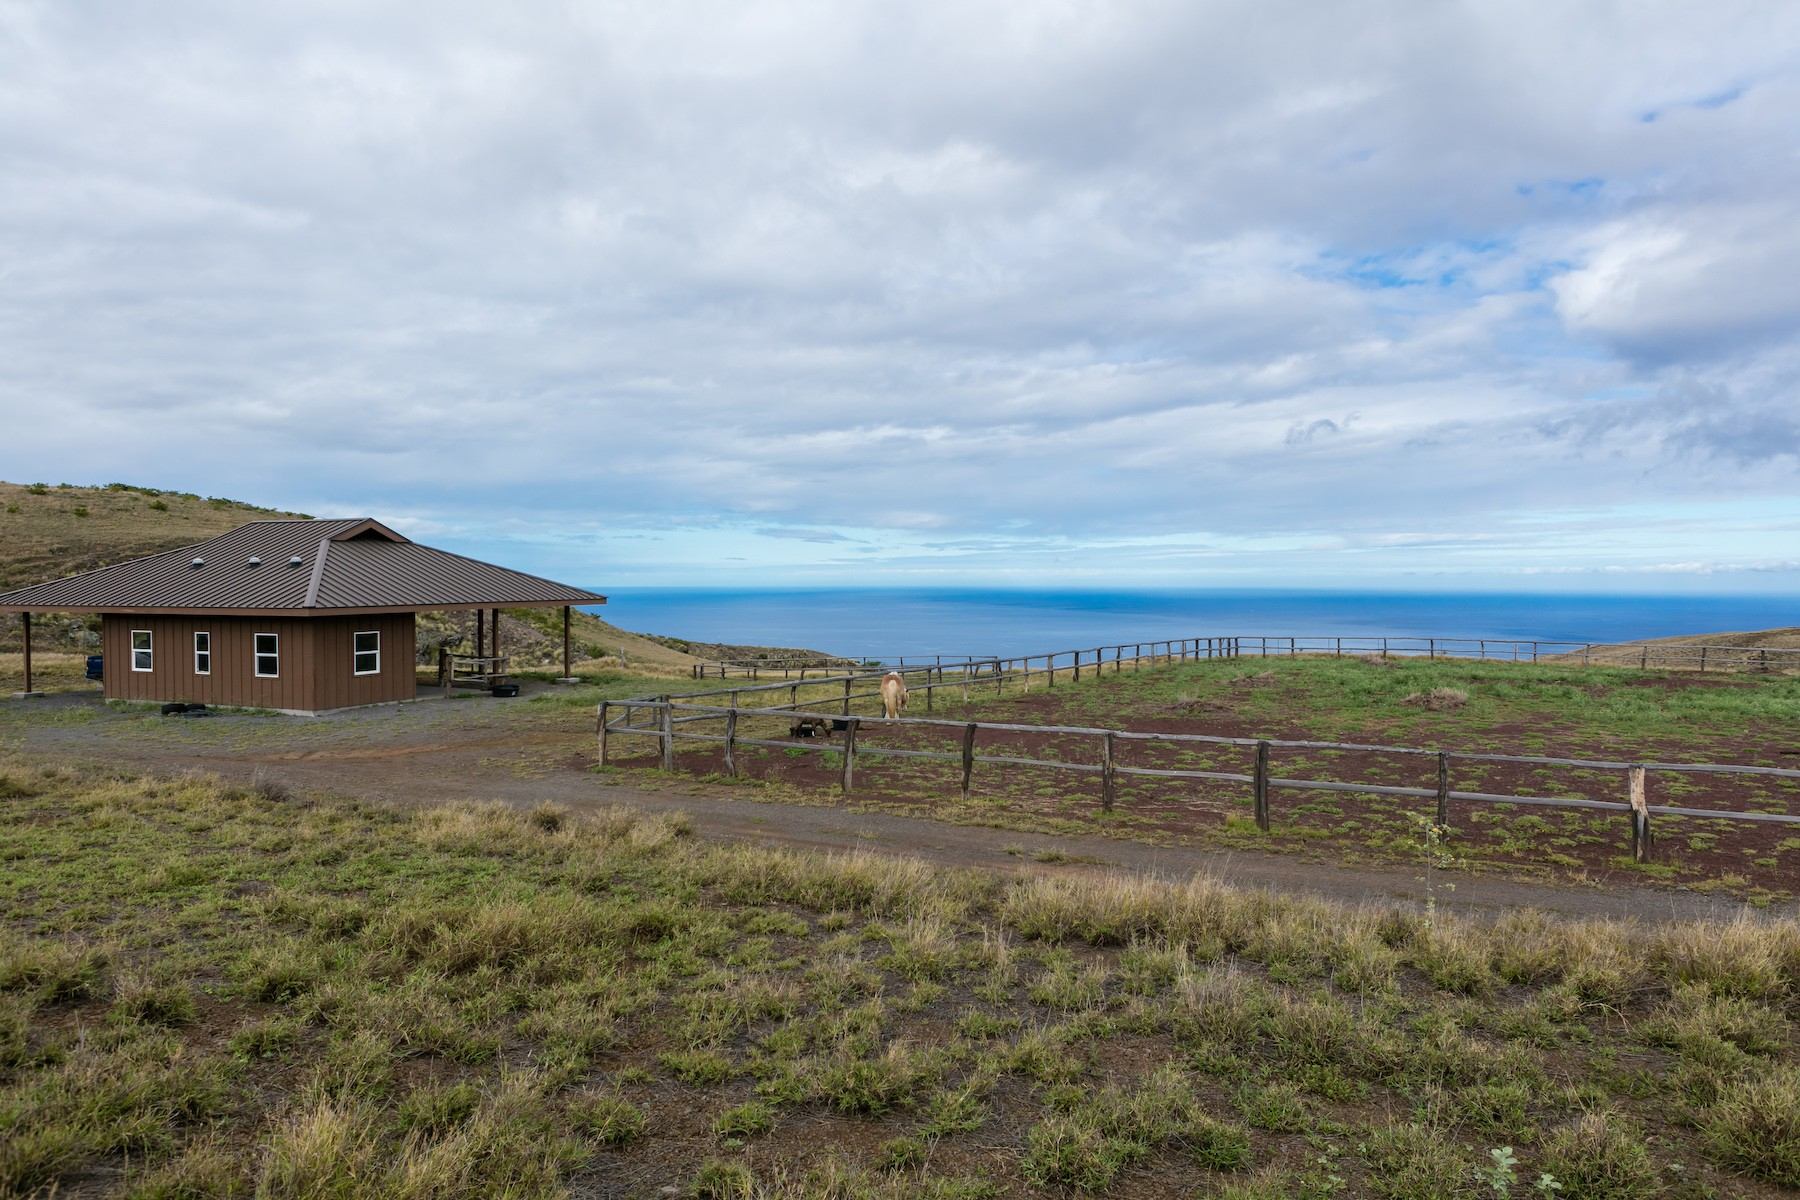 Terreno por un Venta en Kohala Ranch 59-978 Kamakani Lp Kapaau, Hawaii 96755 Estados Unidos